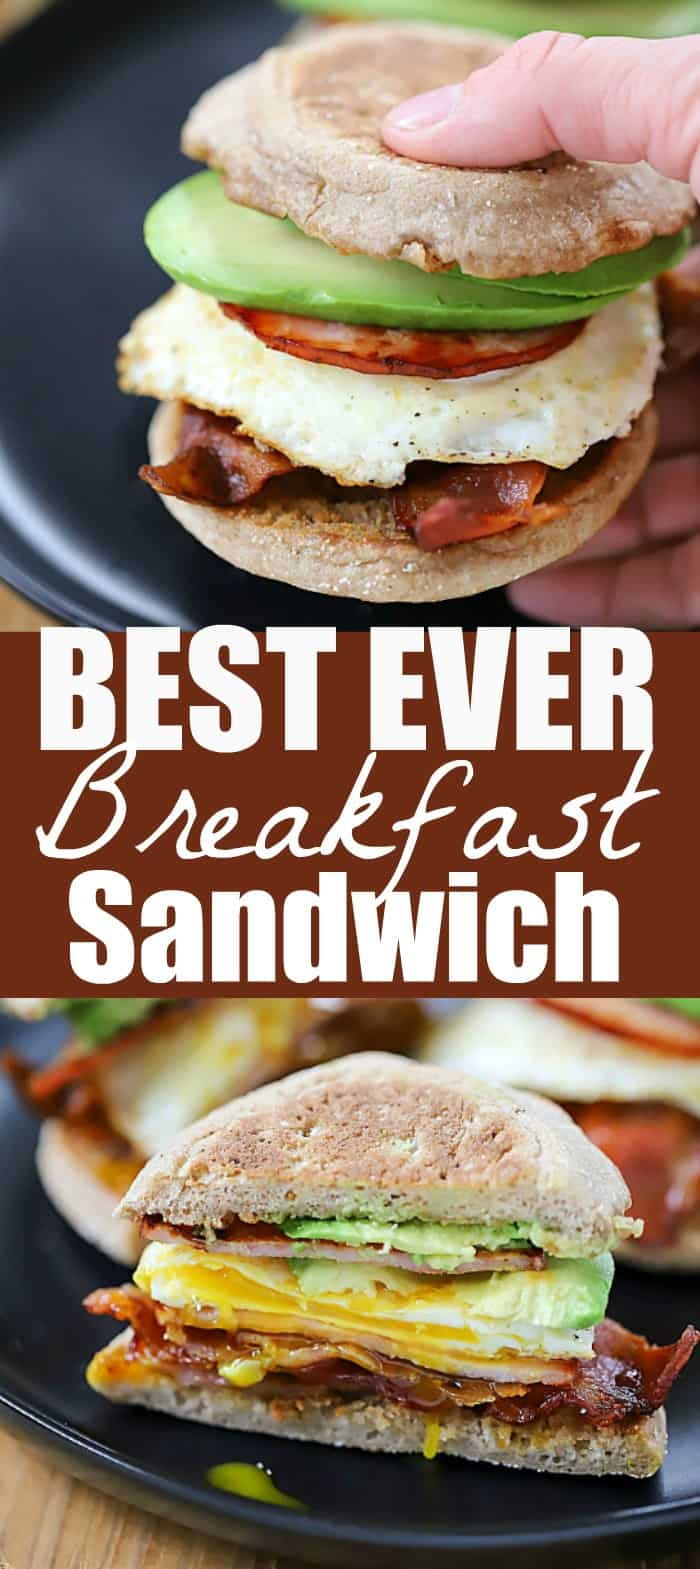 Start your morning off right with this Egg, Bacon and Avocado Breakfast Sandwich! A buttered whole wheat english muffin filled with crispy bacon, canadian bacon, fried egg and avocado. So yummy and definitely the best breakfast recipe ever! #recipe# breakfast #breakfastrecipe #sandwich #easy #bacon #eggs #avocado #bestever